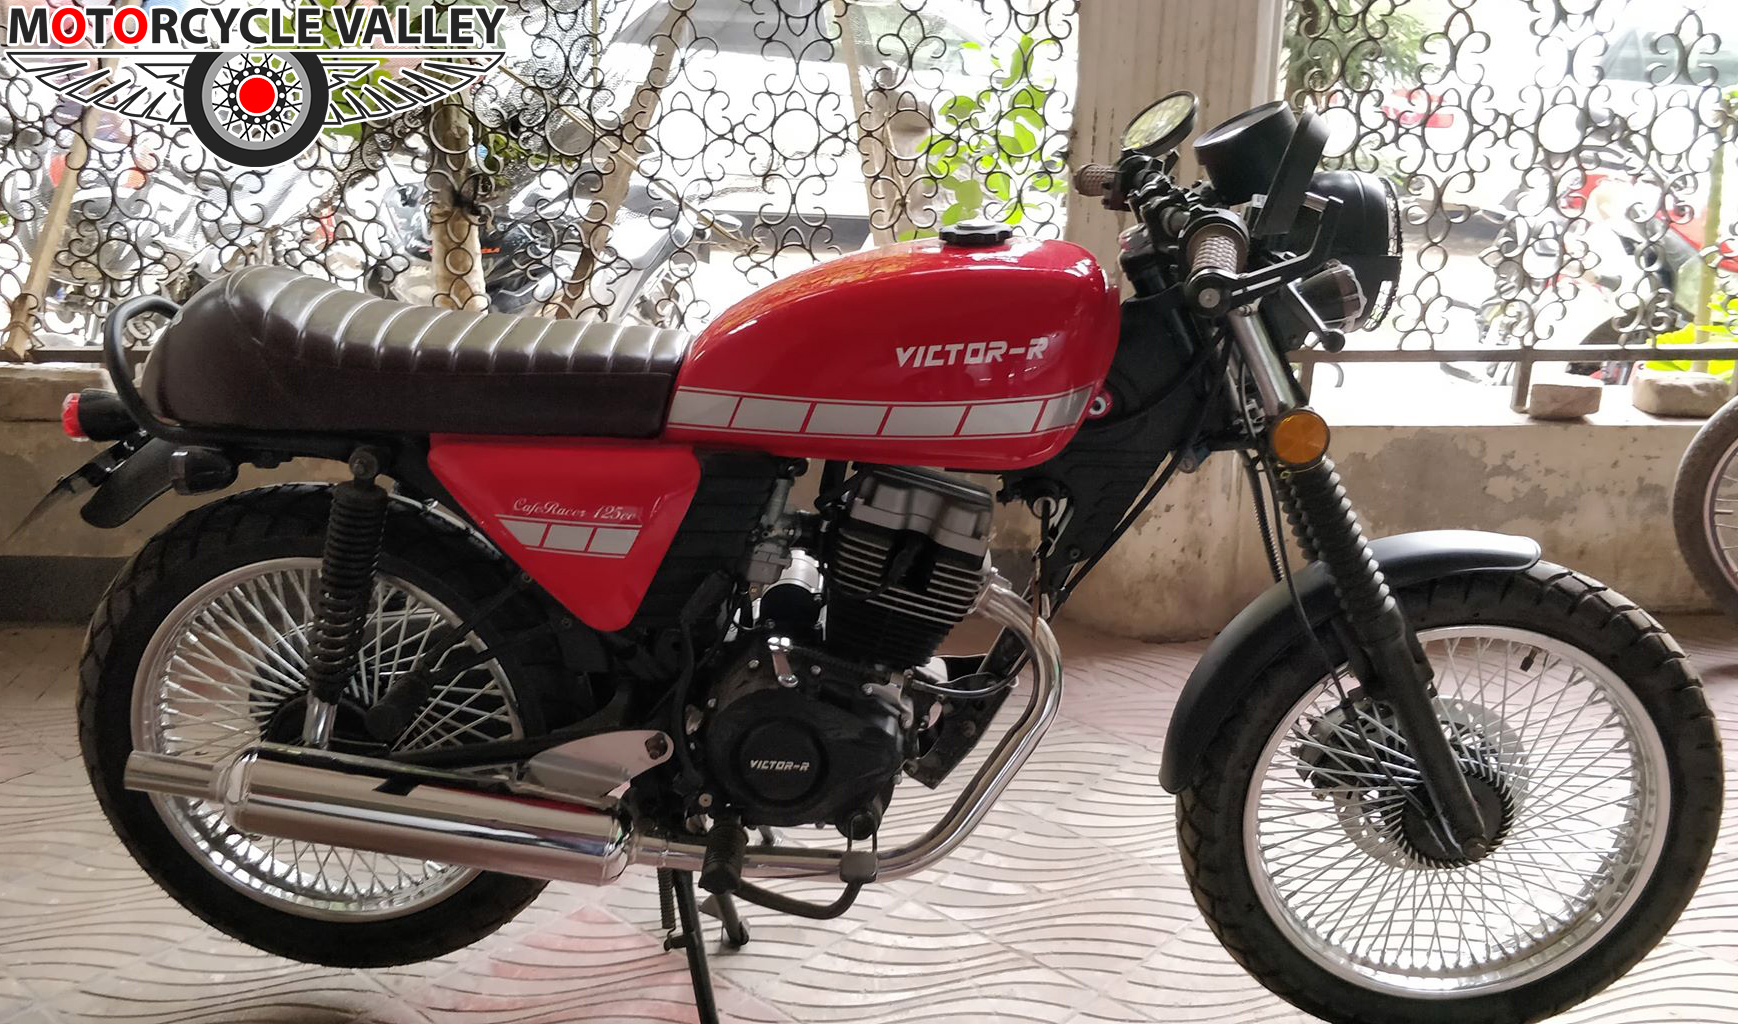 Victor-R-Cafe-Racer-125-Features-Review